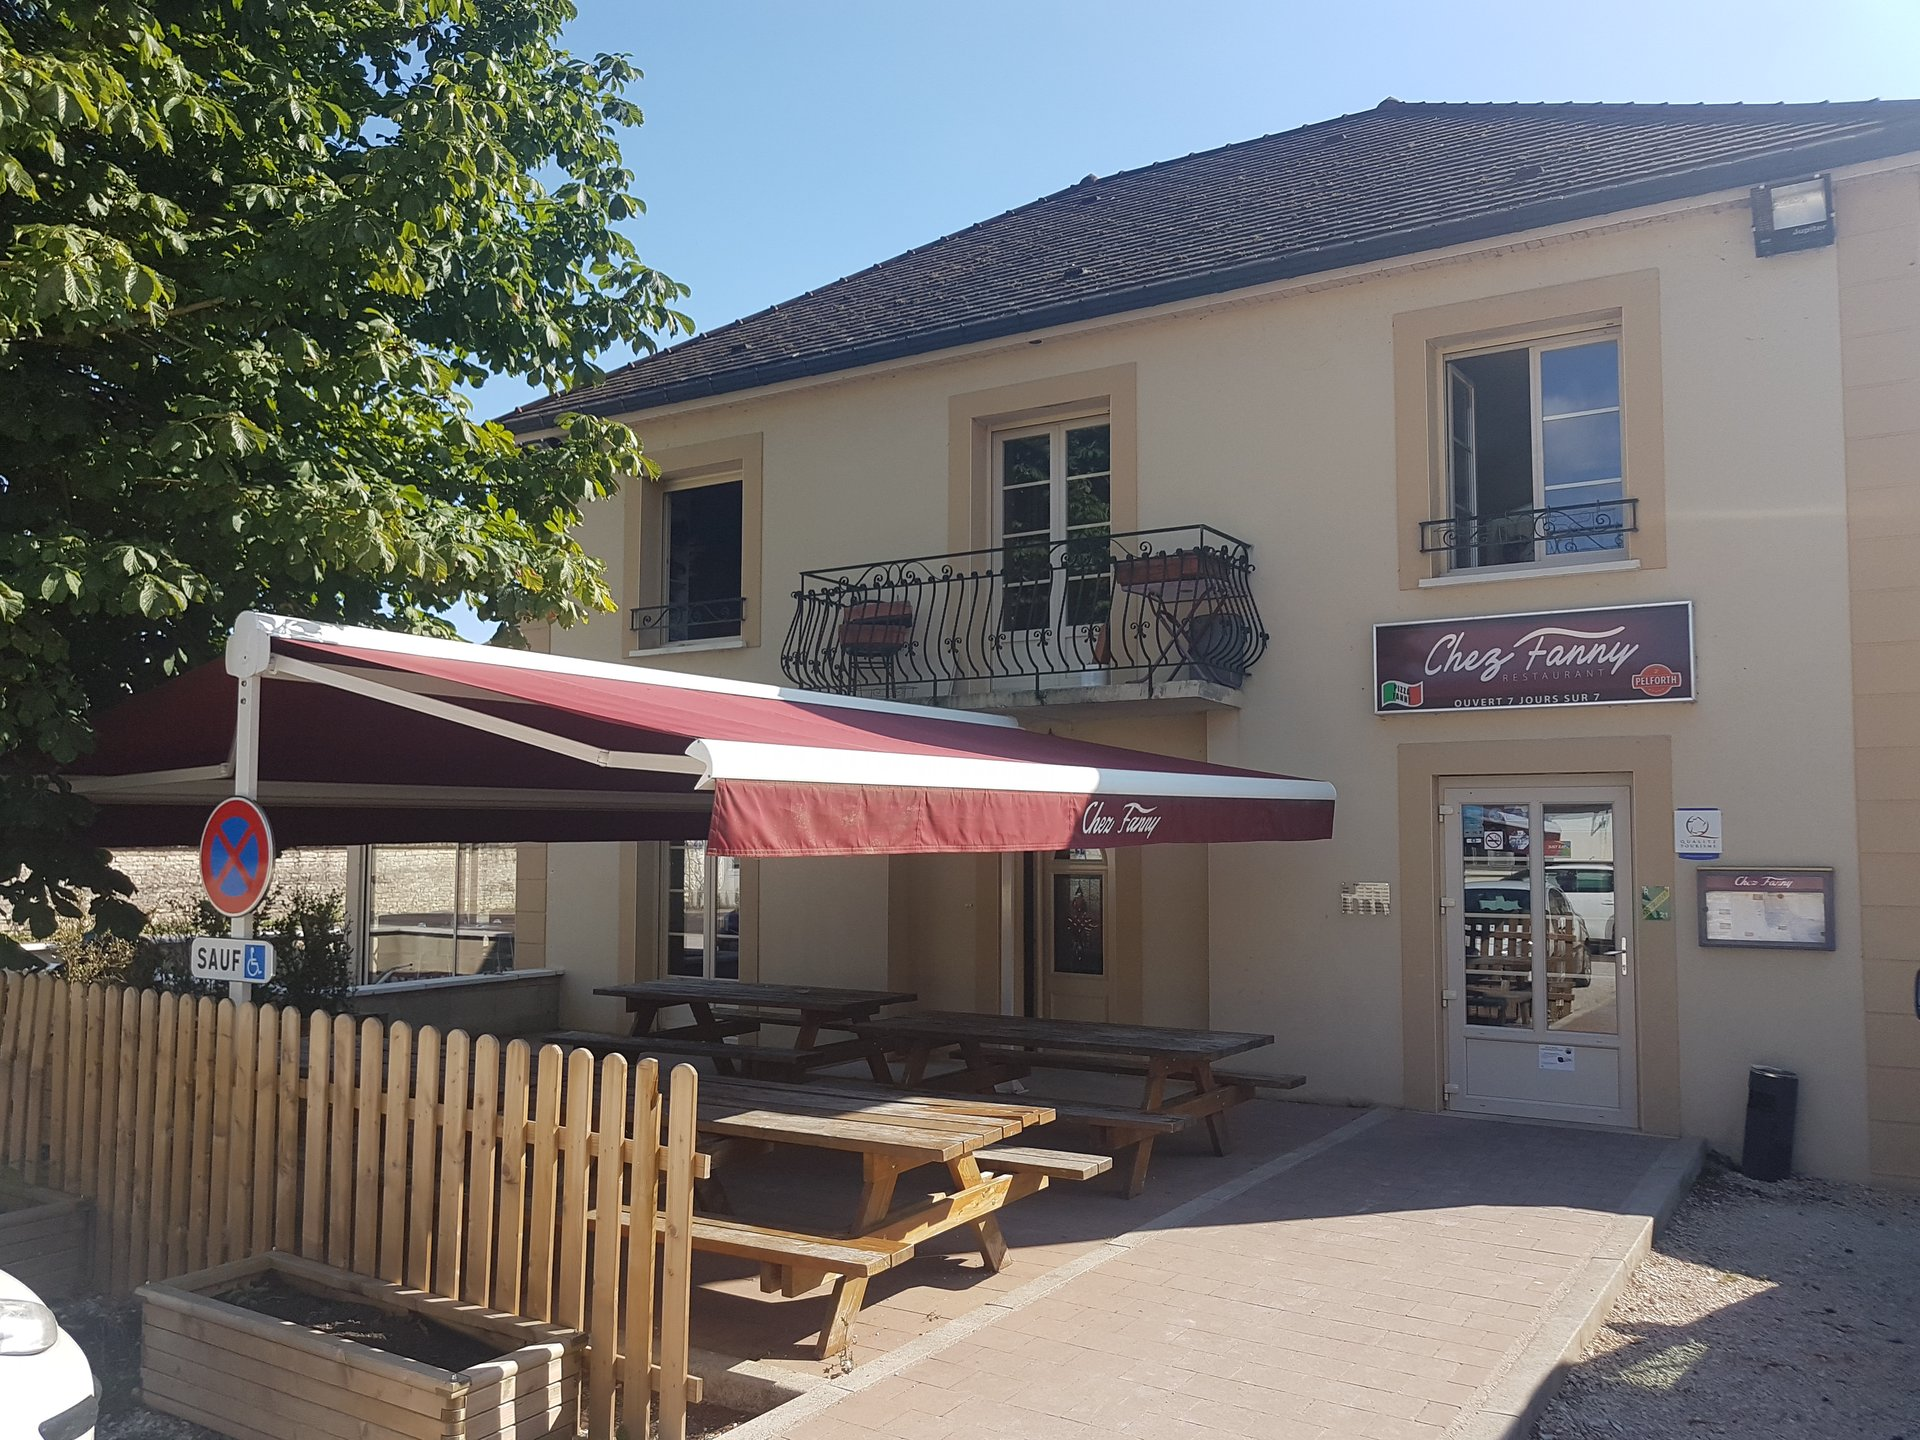 COTE D'OR (21) BRAZEY EN PLAINE FONDS DE COMMERCE D'ACTIVITE RESTAURATION